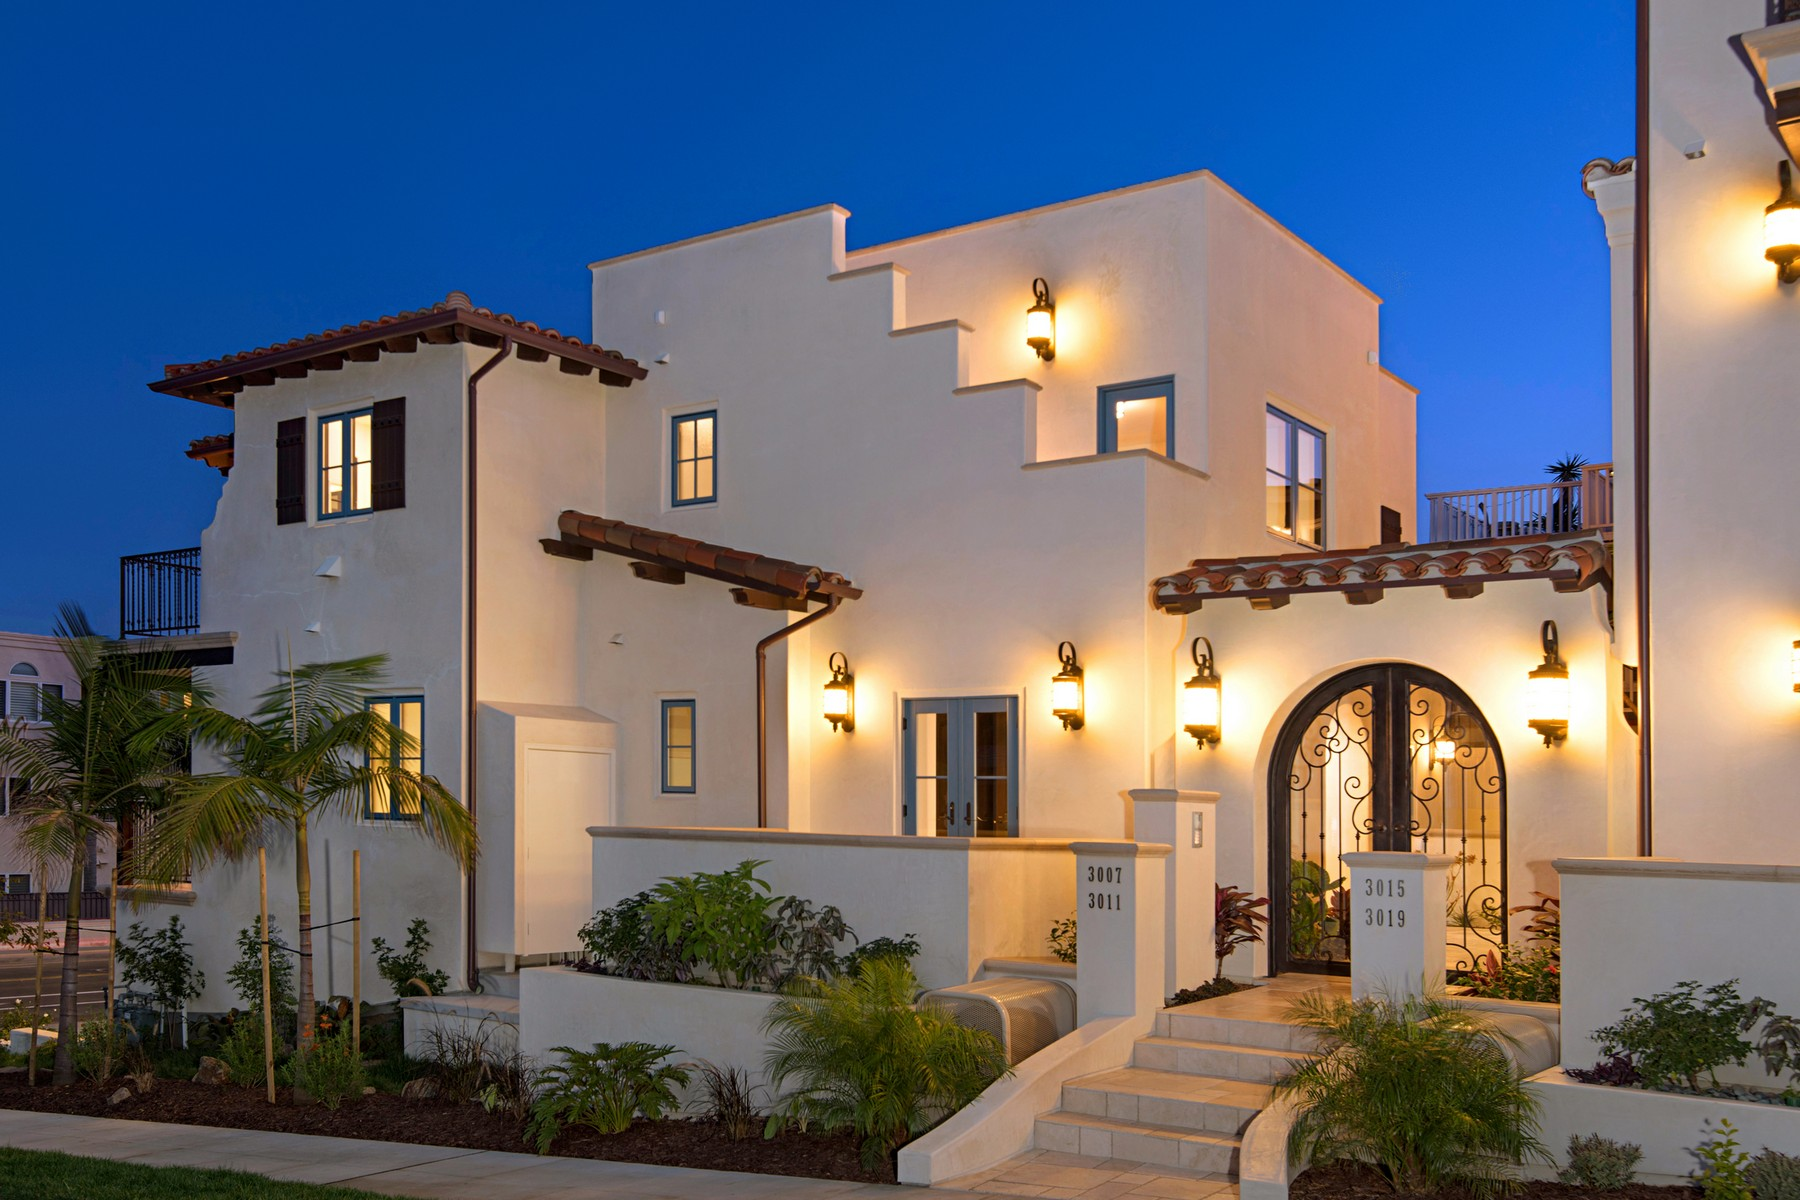 Townhouse for Sale at 3007 Lawrence Street La Playa, San Diego, California, 92106 United States